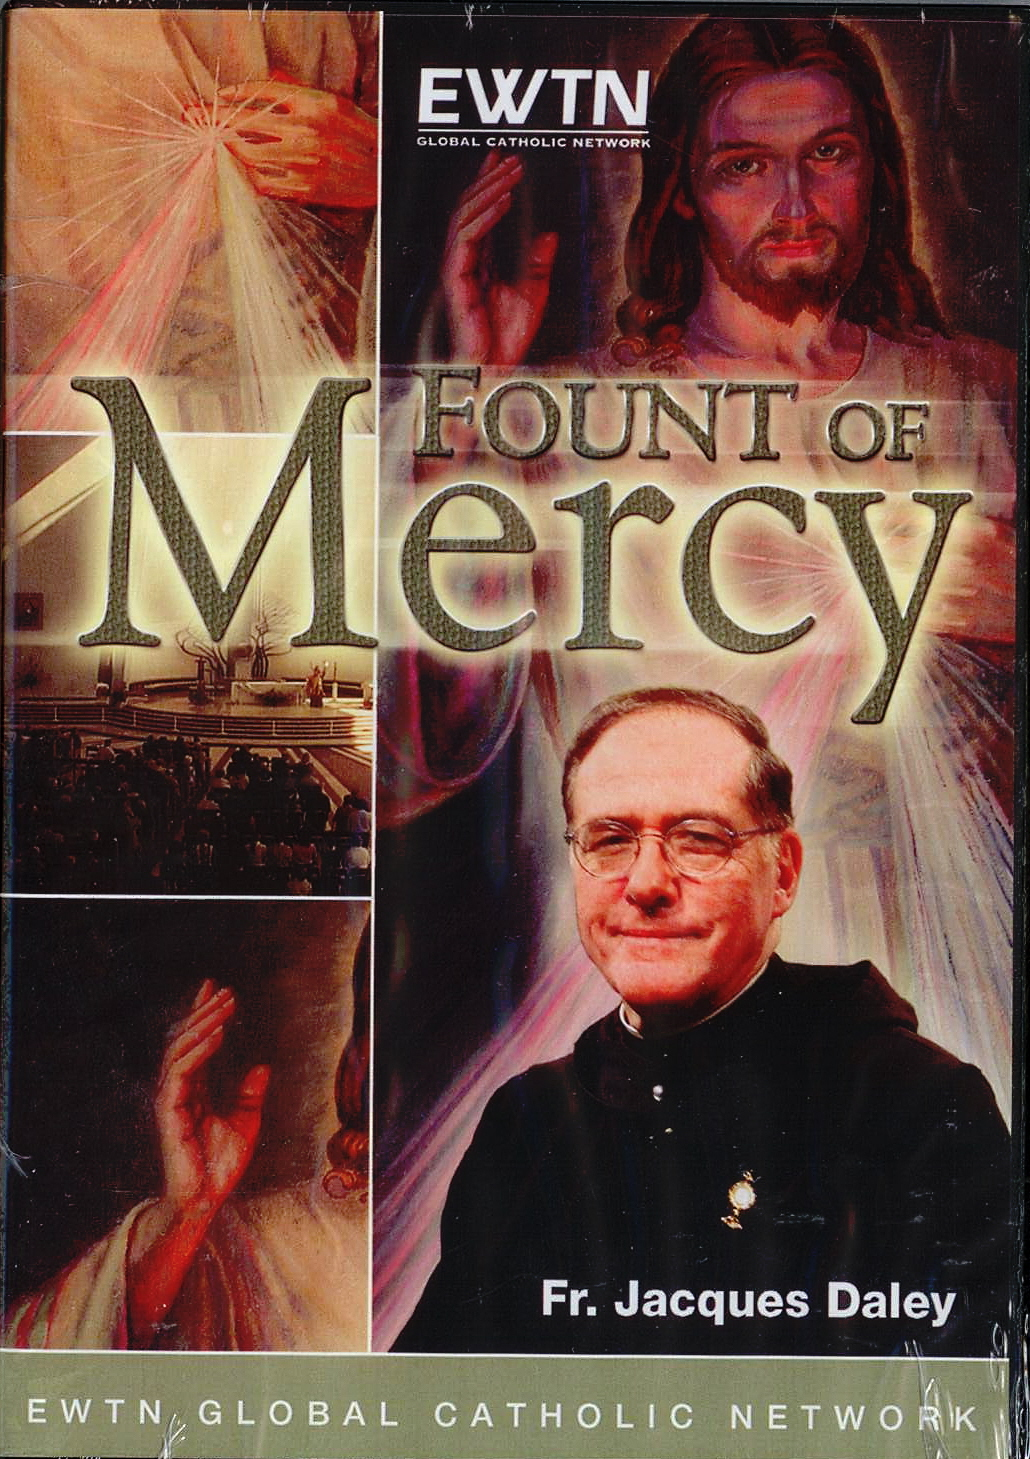 DVD-Fount of Mercy, Title; Fr. Jacques Daley, Lecturer